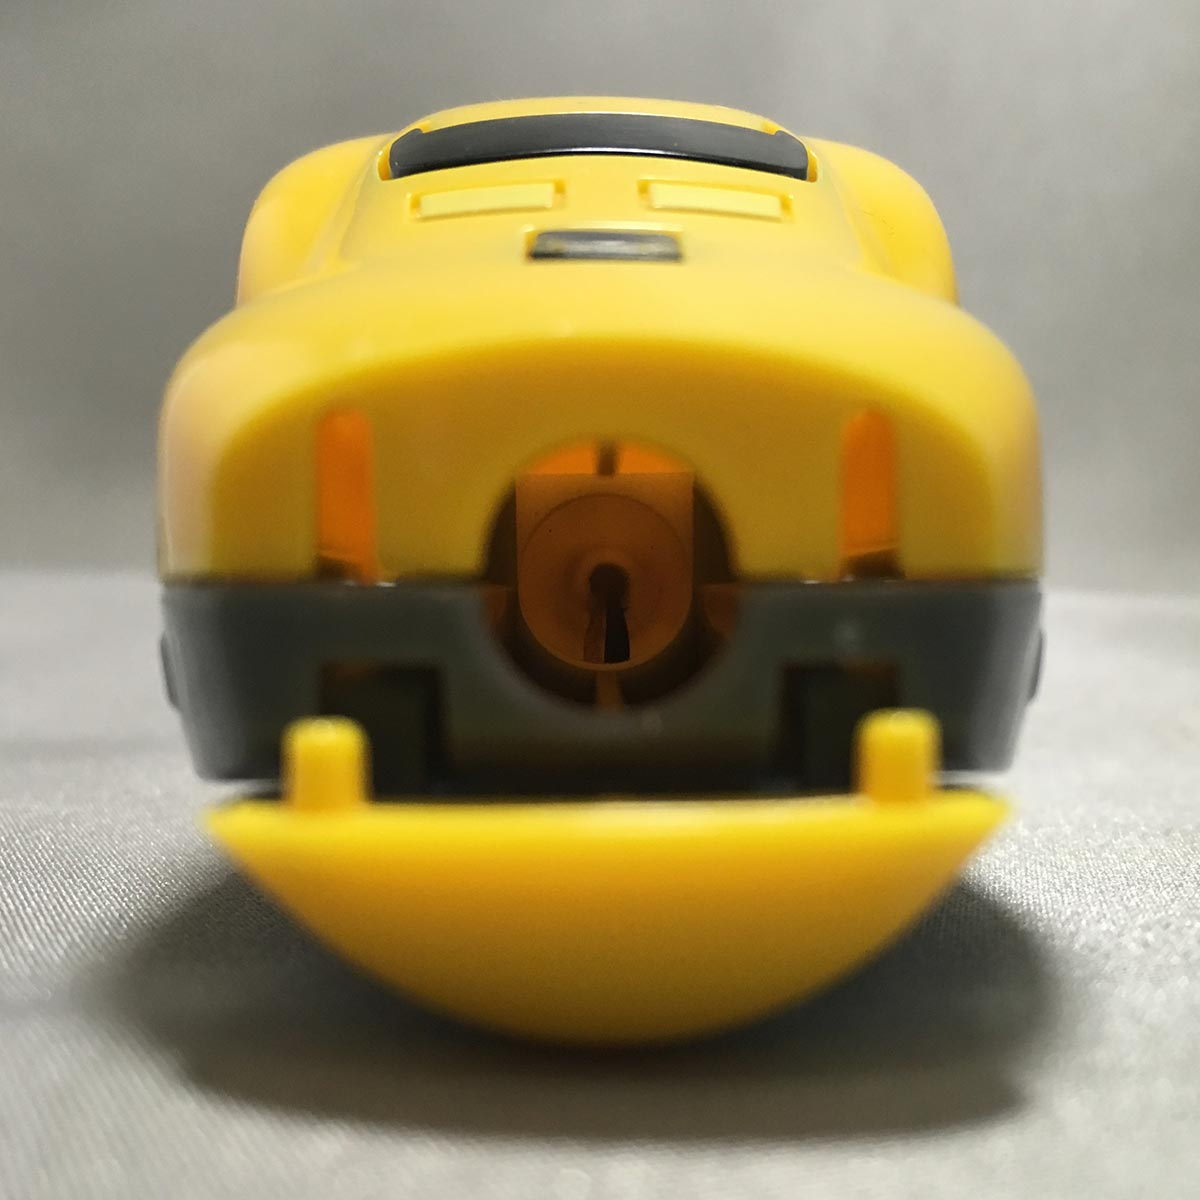 Doctor Yellow Pencil Sharpener - front close up view